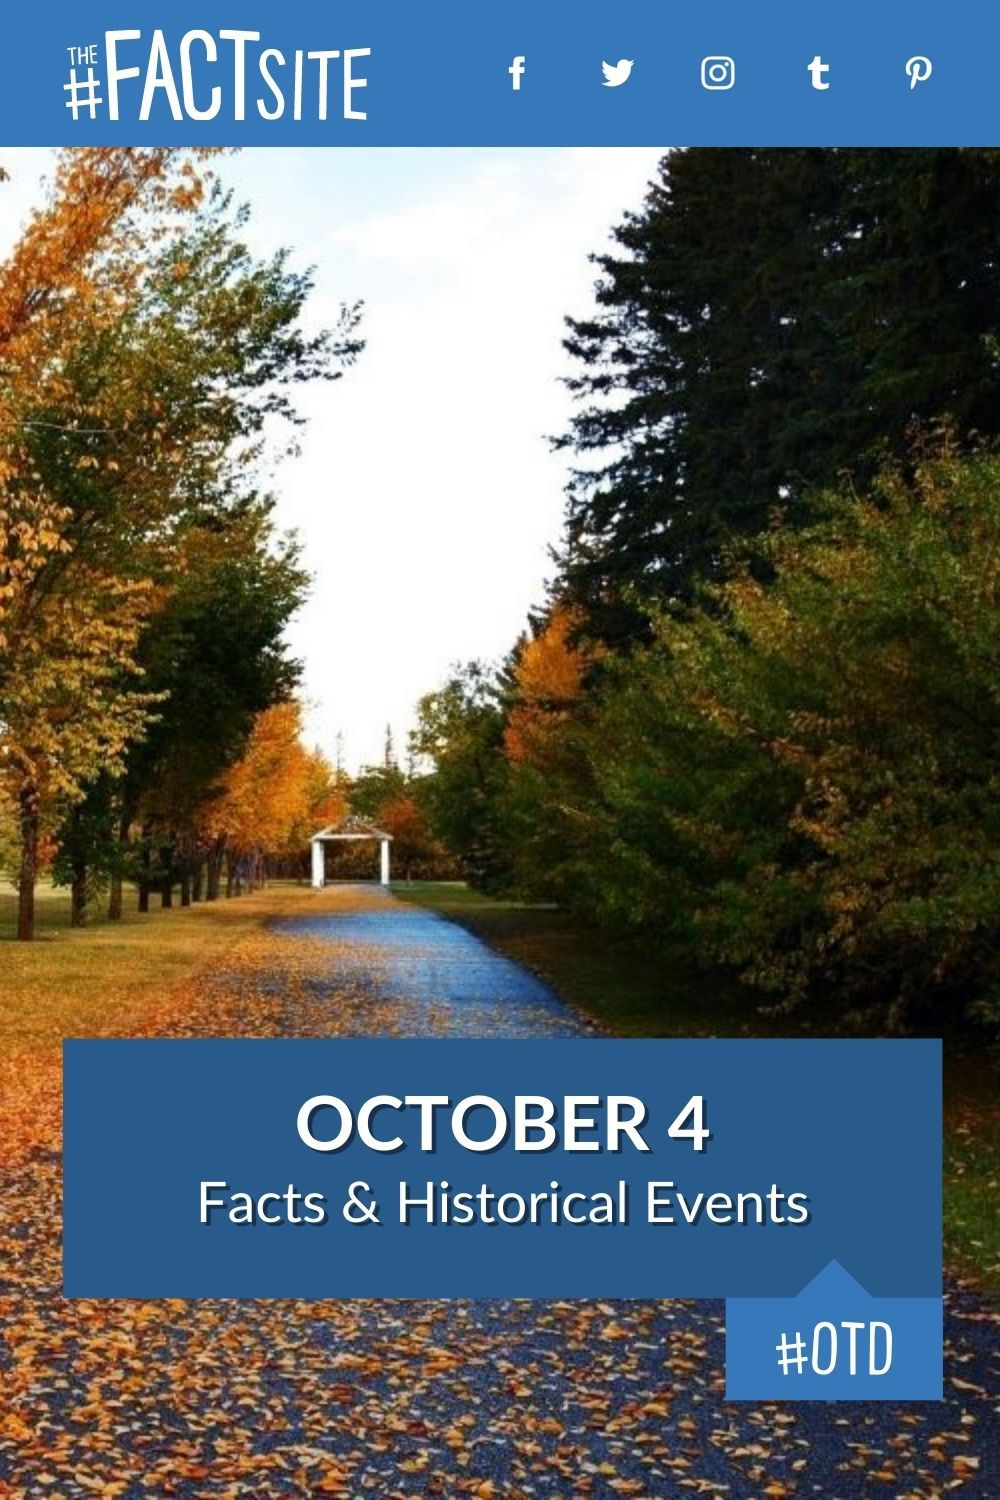 Facts & Historic Events That Happened on October 4